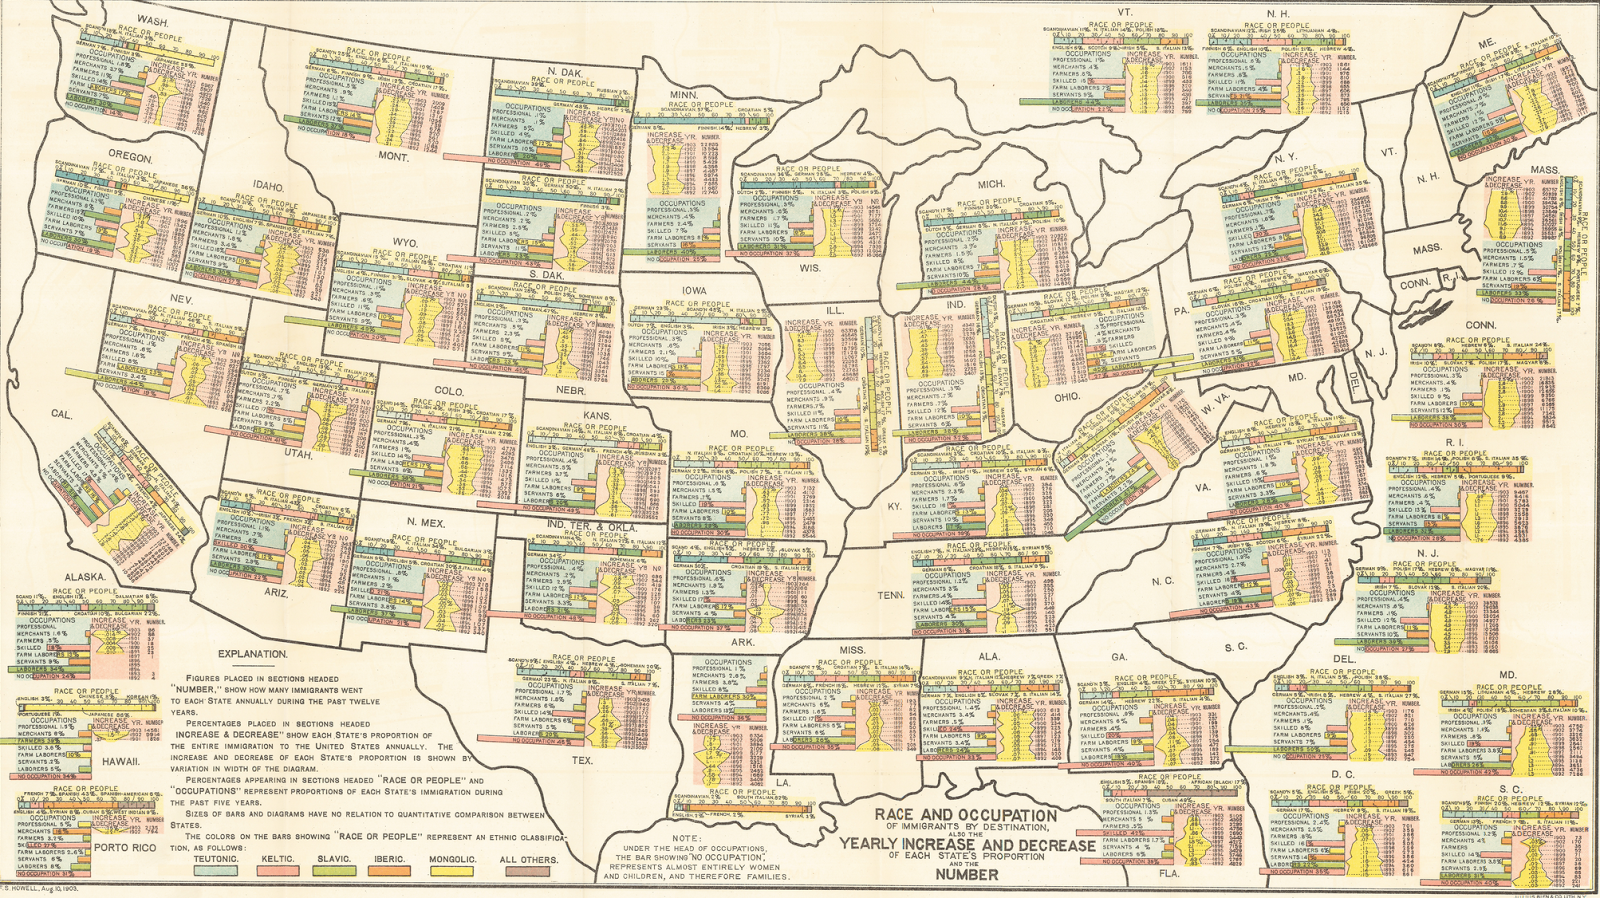 america as a nation of immigrants essay The us is becoming more of a nation of immigrants every day—just as it was, but in very different ways, a century ago.